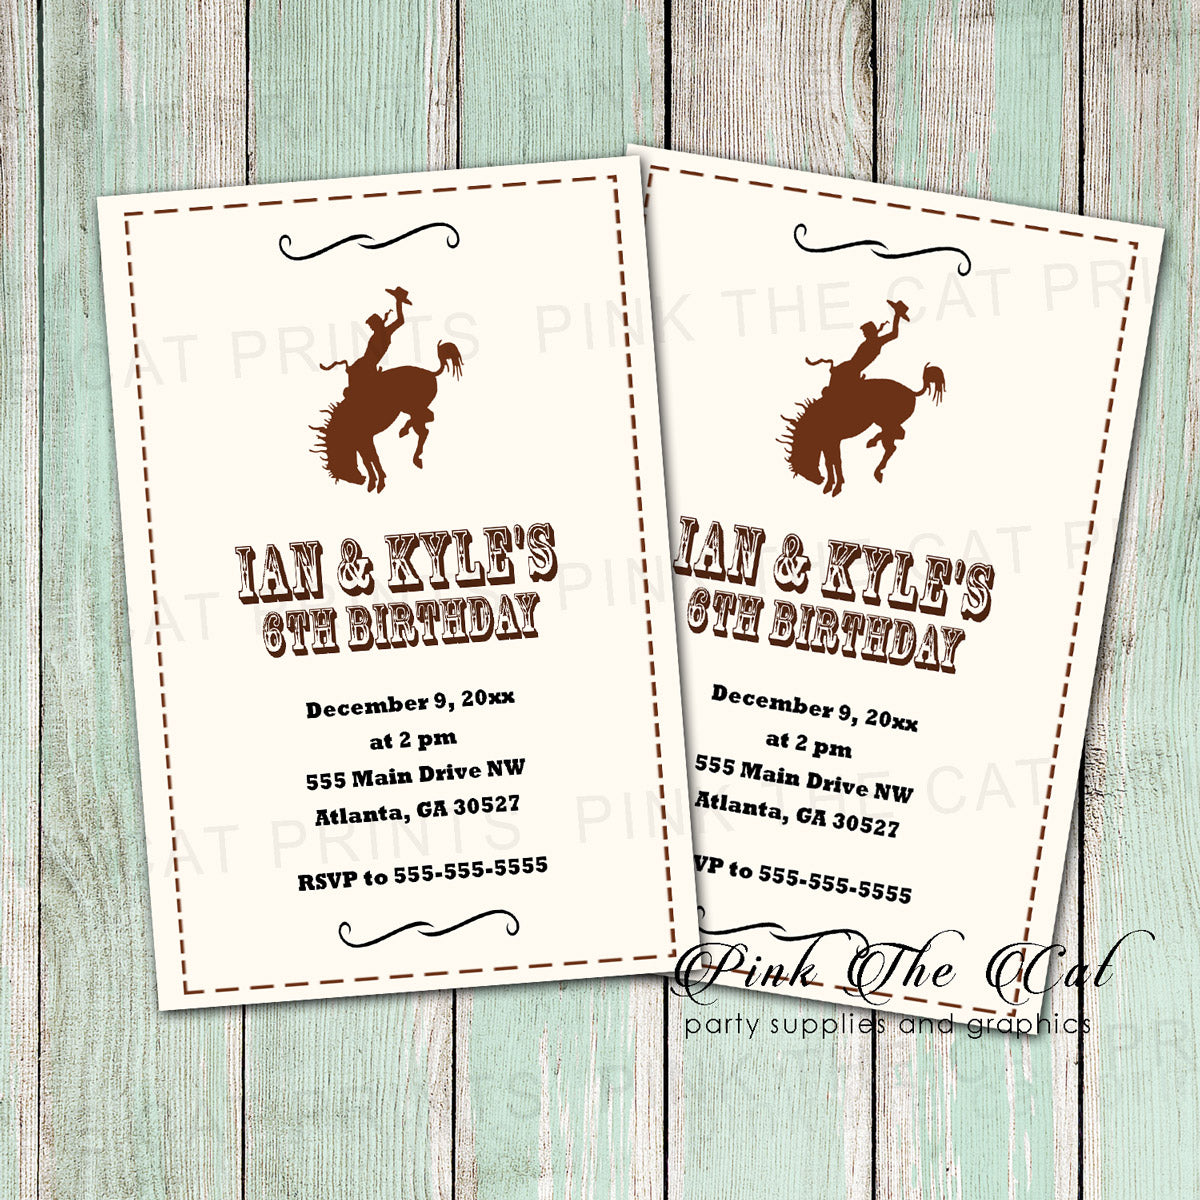 30 Invitations Rodeo Cowboy Birthday Party Rustic Kids Adults Pink The Cat